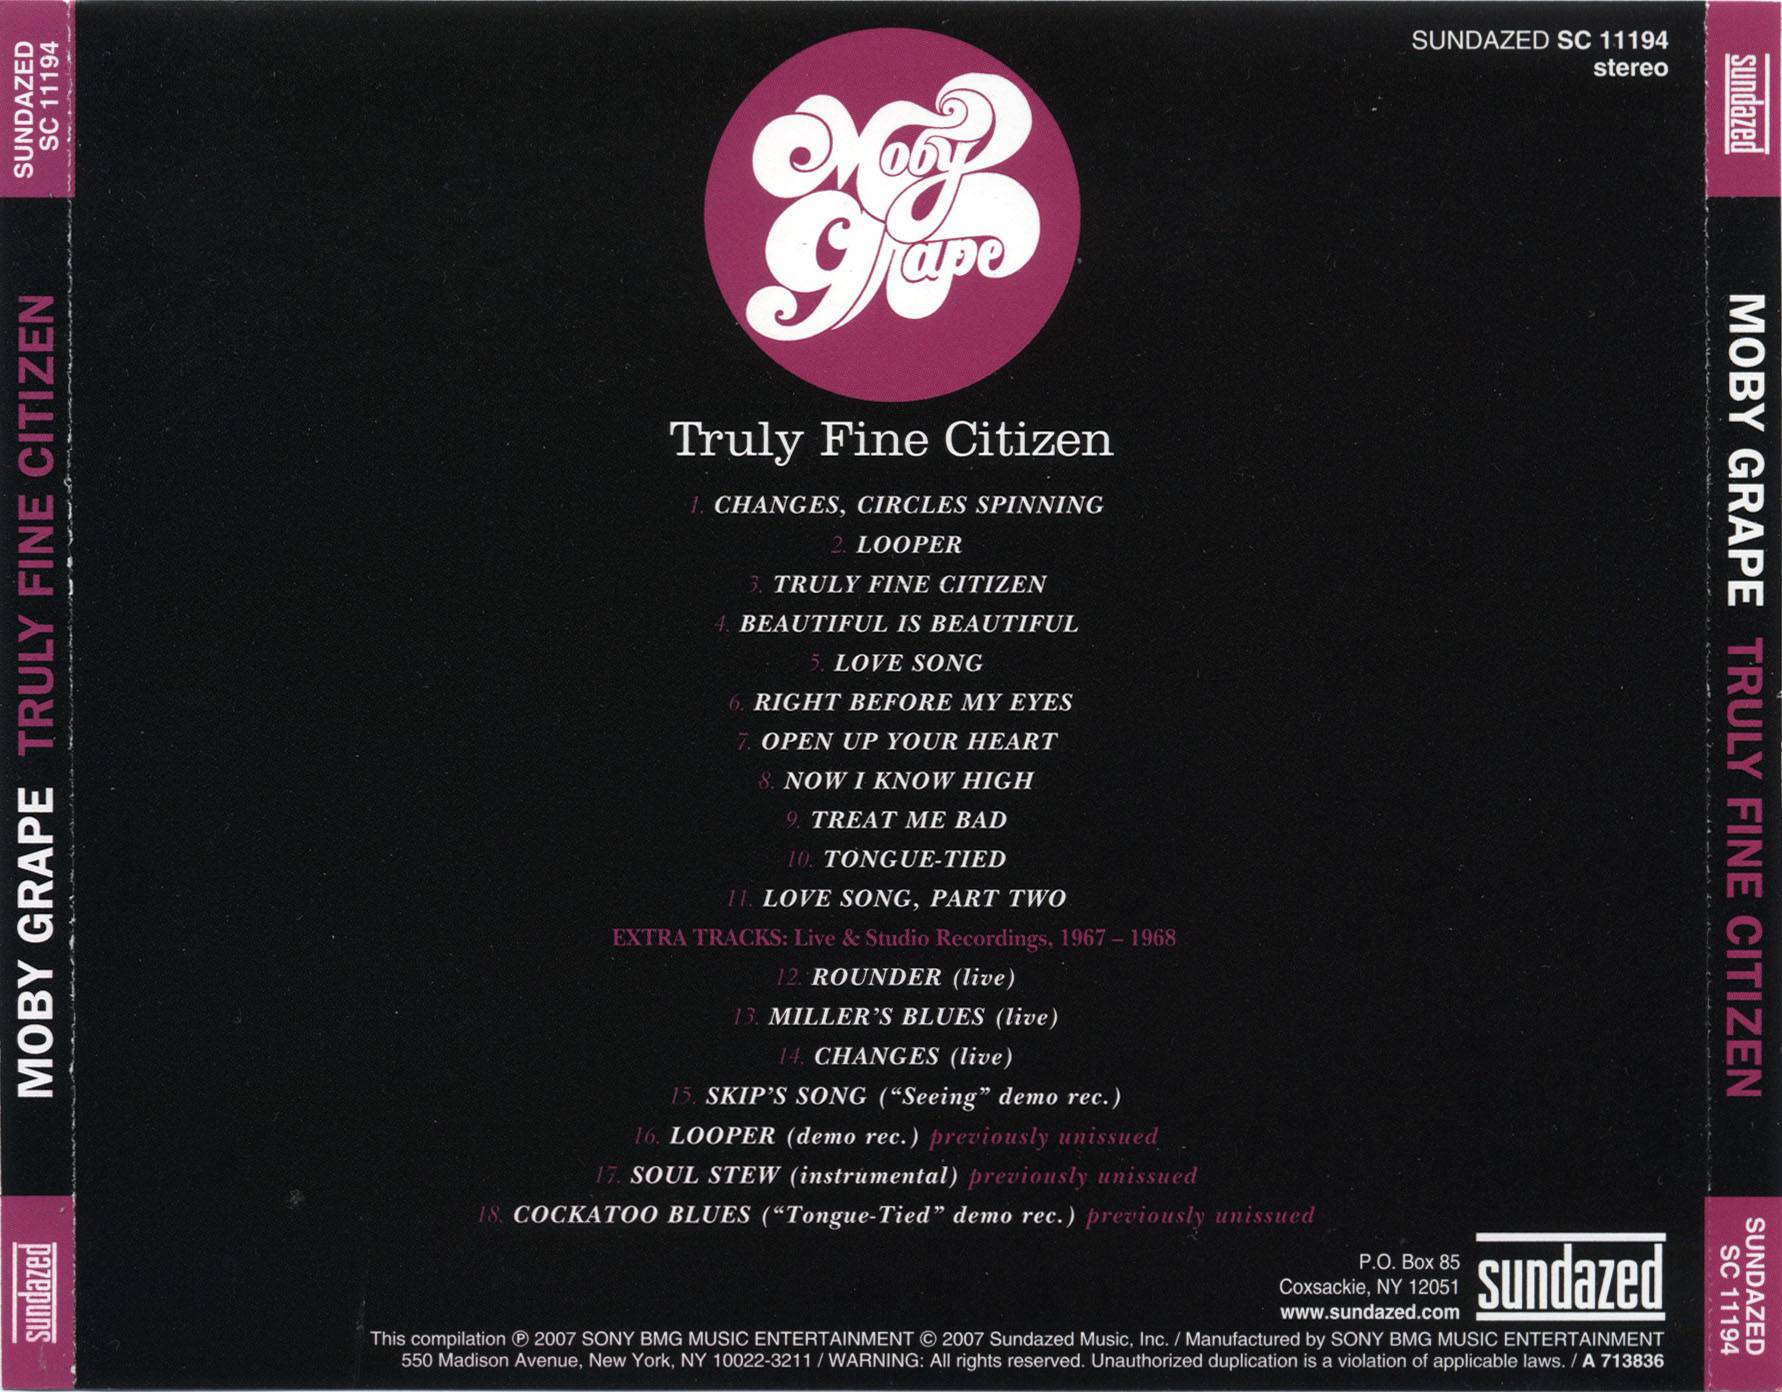 Moby Grape - Truly Fine Citizen (1969) Expanded Remastered 2007